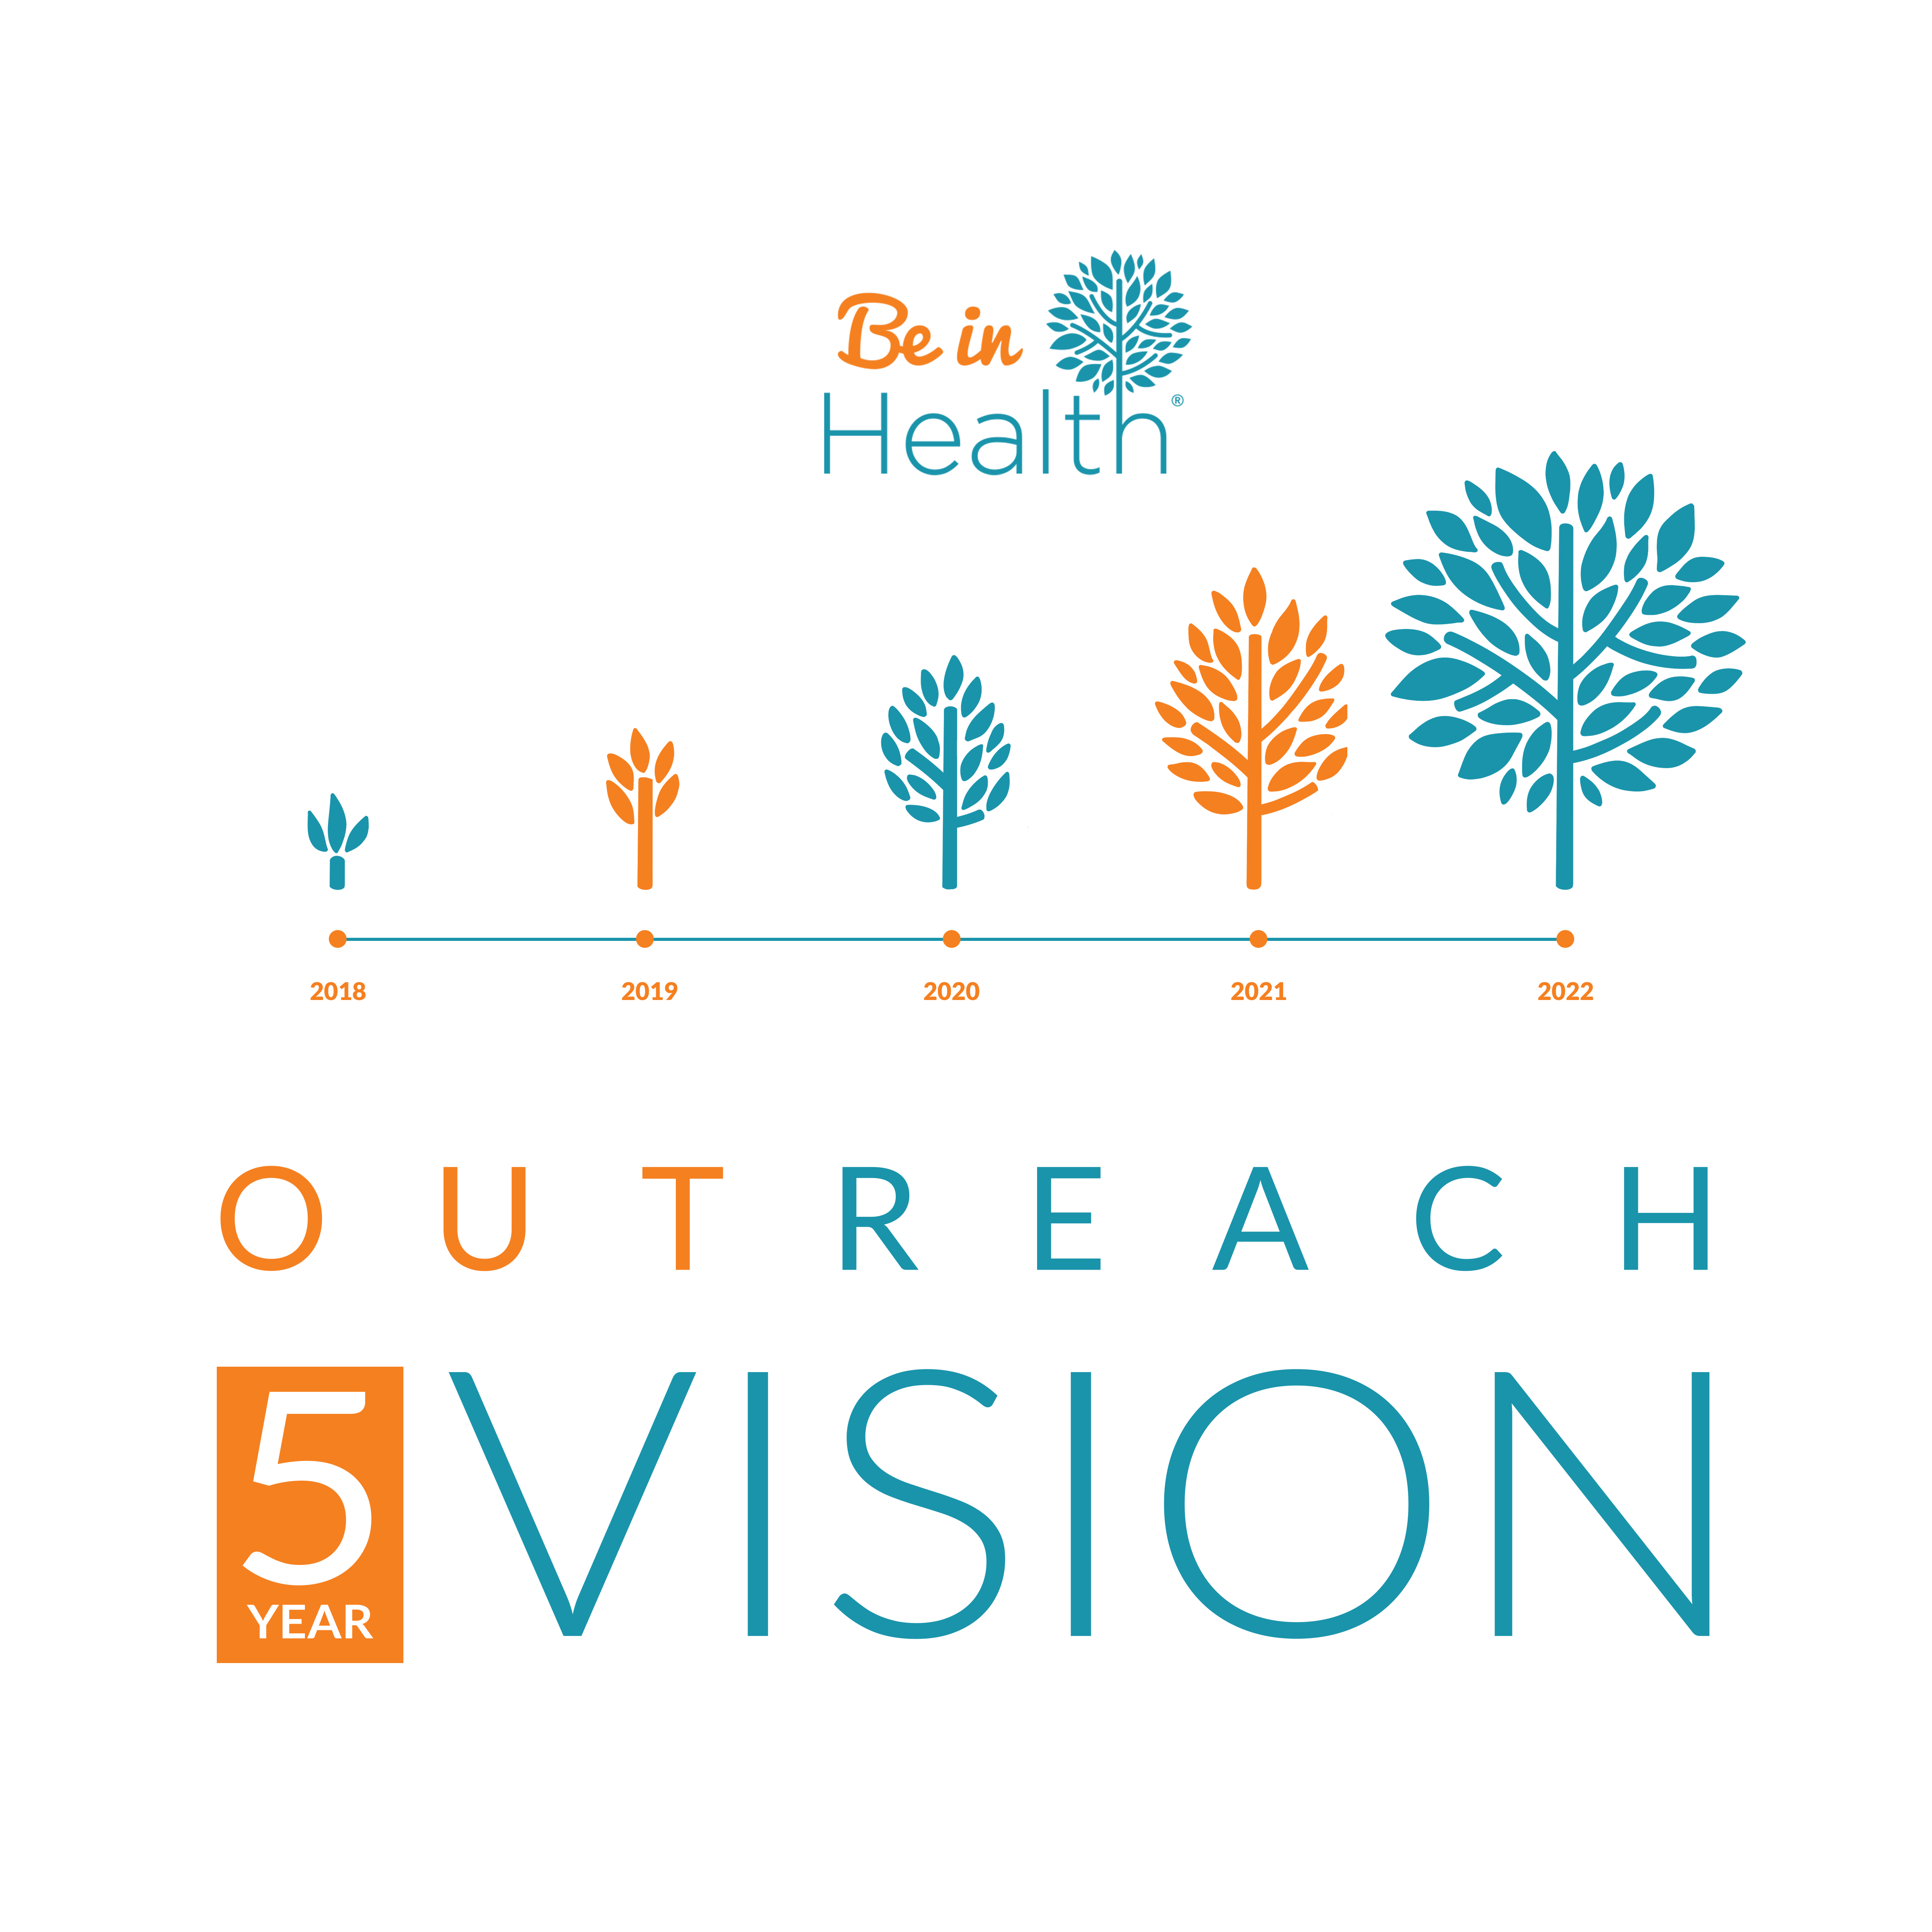 Descriptive, yet simple graphic for our 5 year vision campaign